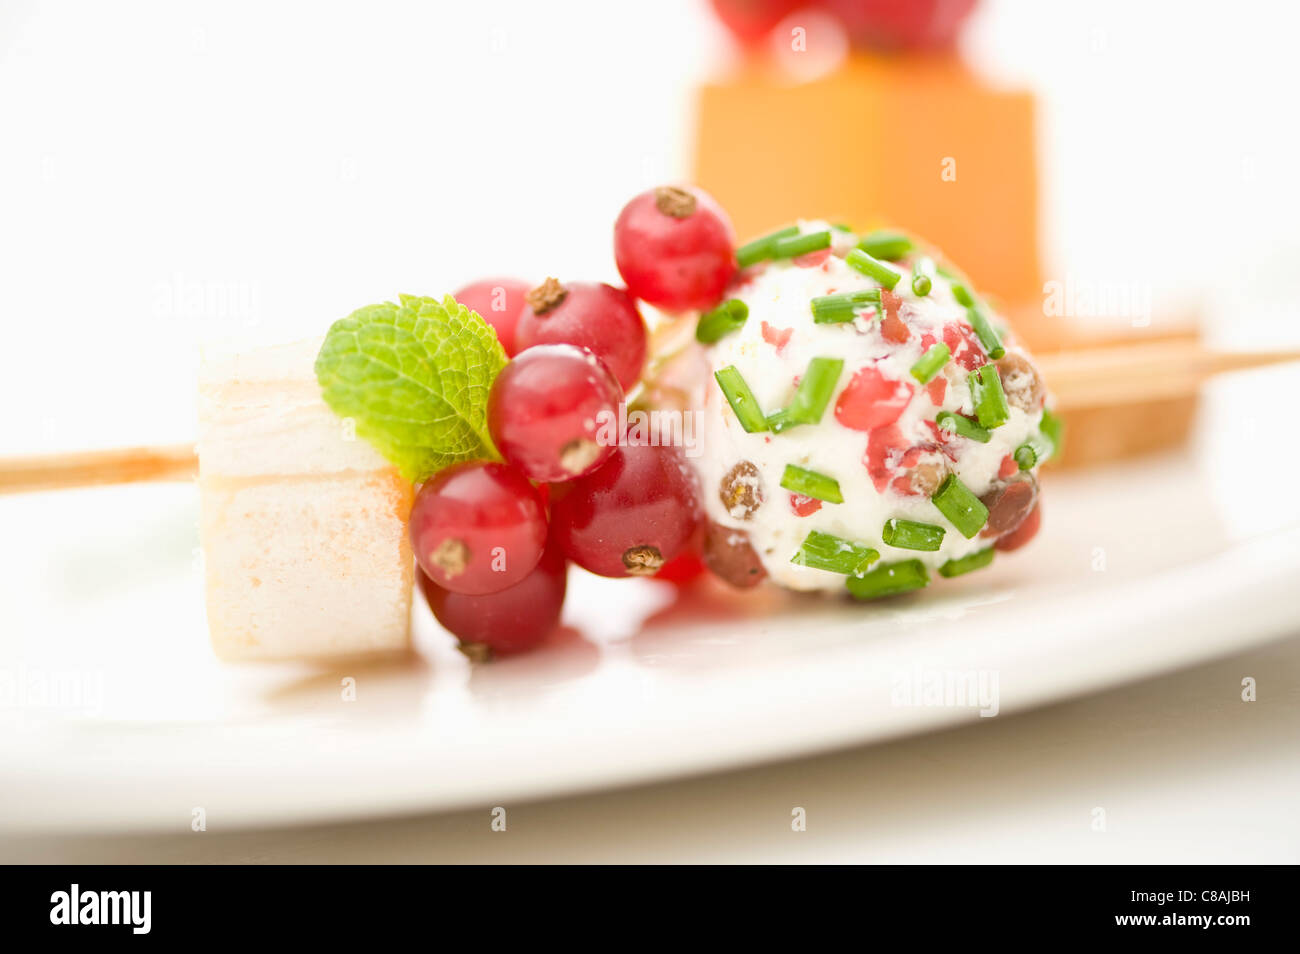 Cheese and red fruit brochette - Stock Image